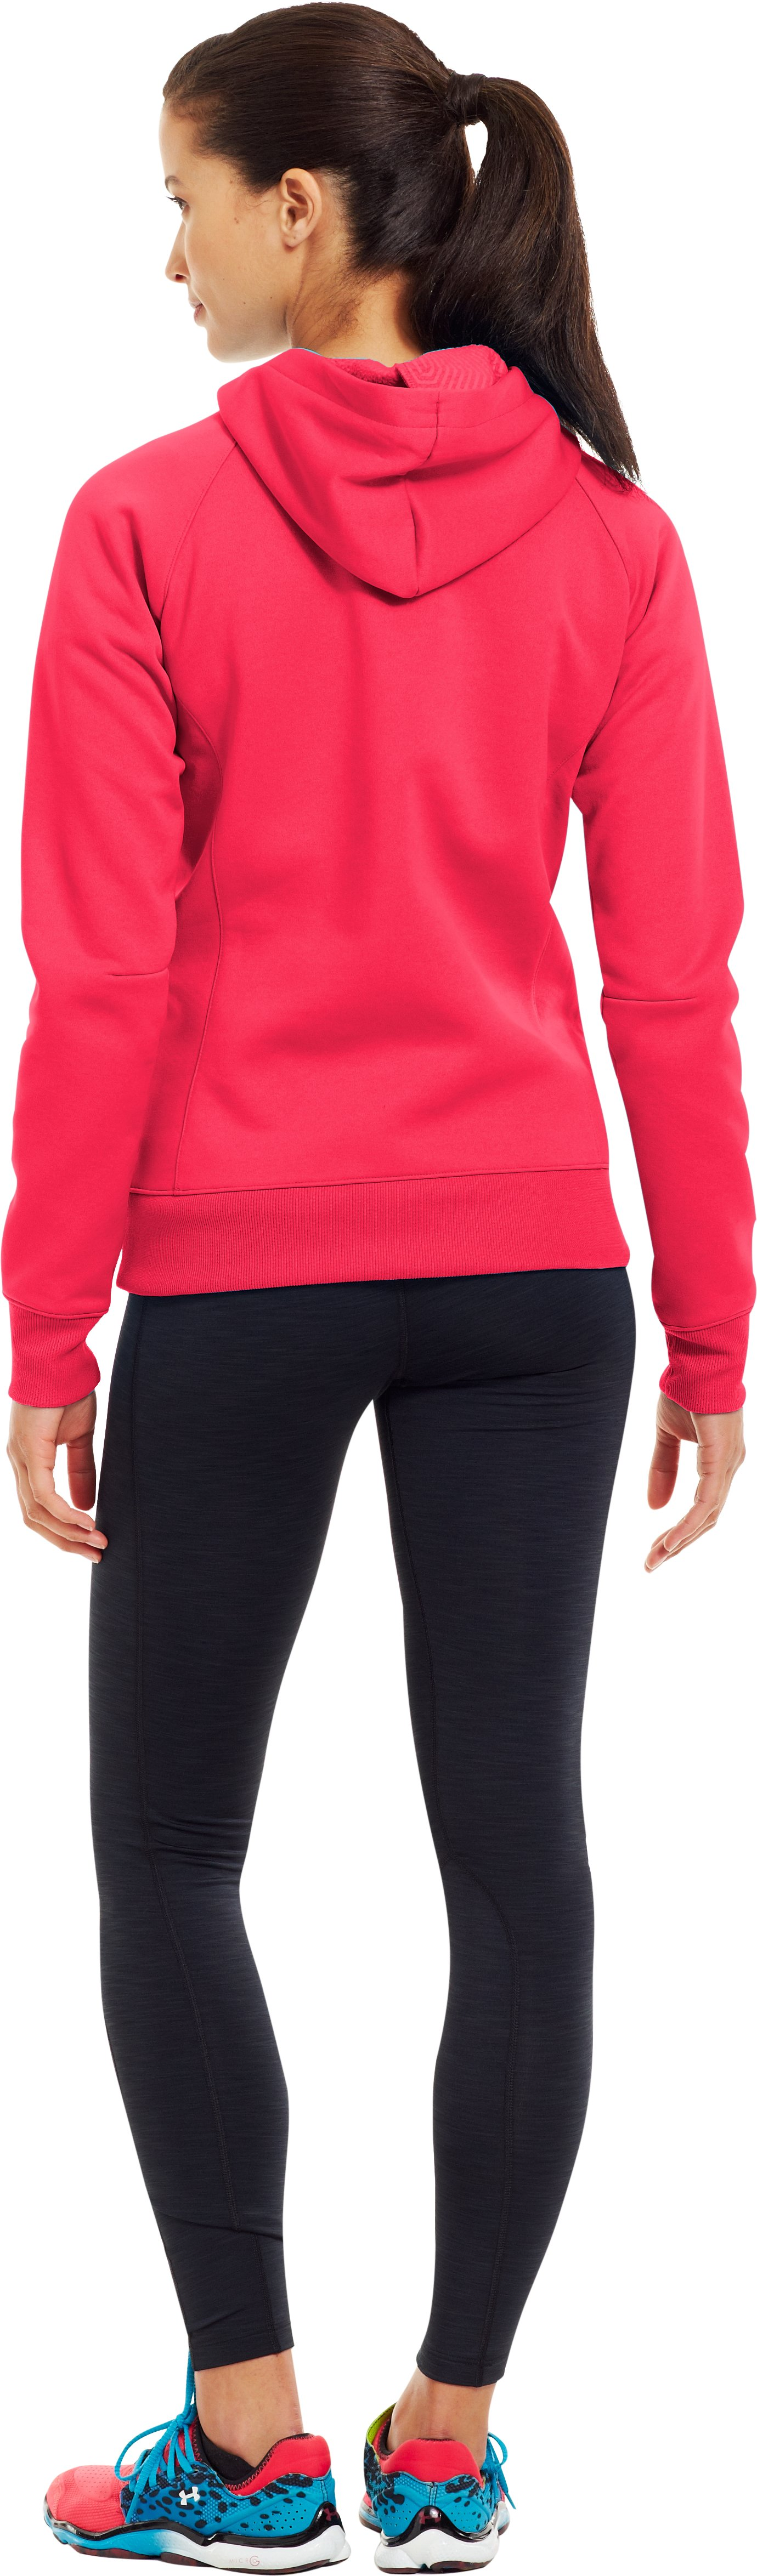 Women's ColdGear® Infrared Armour® Fleece Storm Hoodie, Neo Pulse, Back